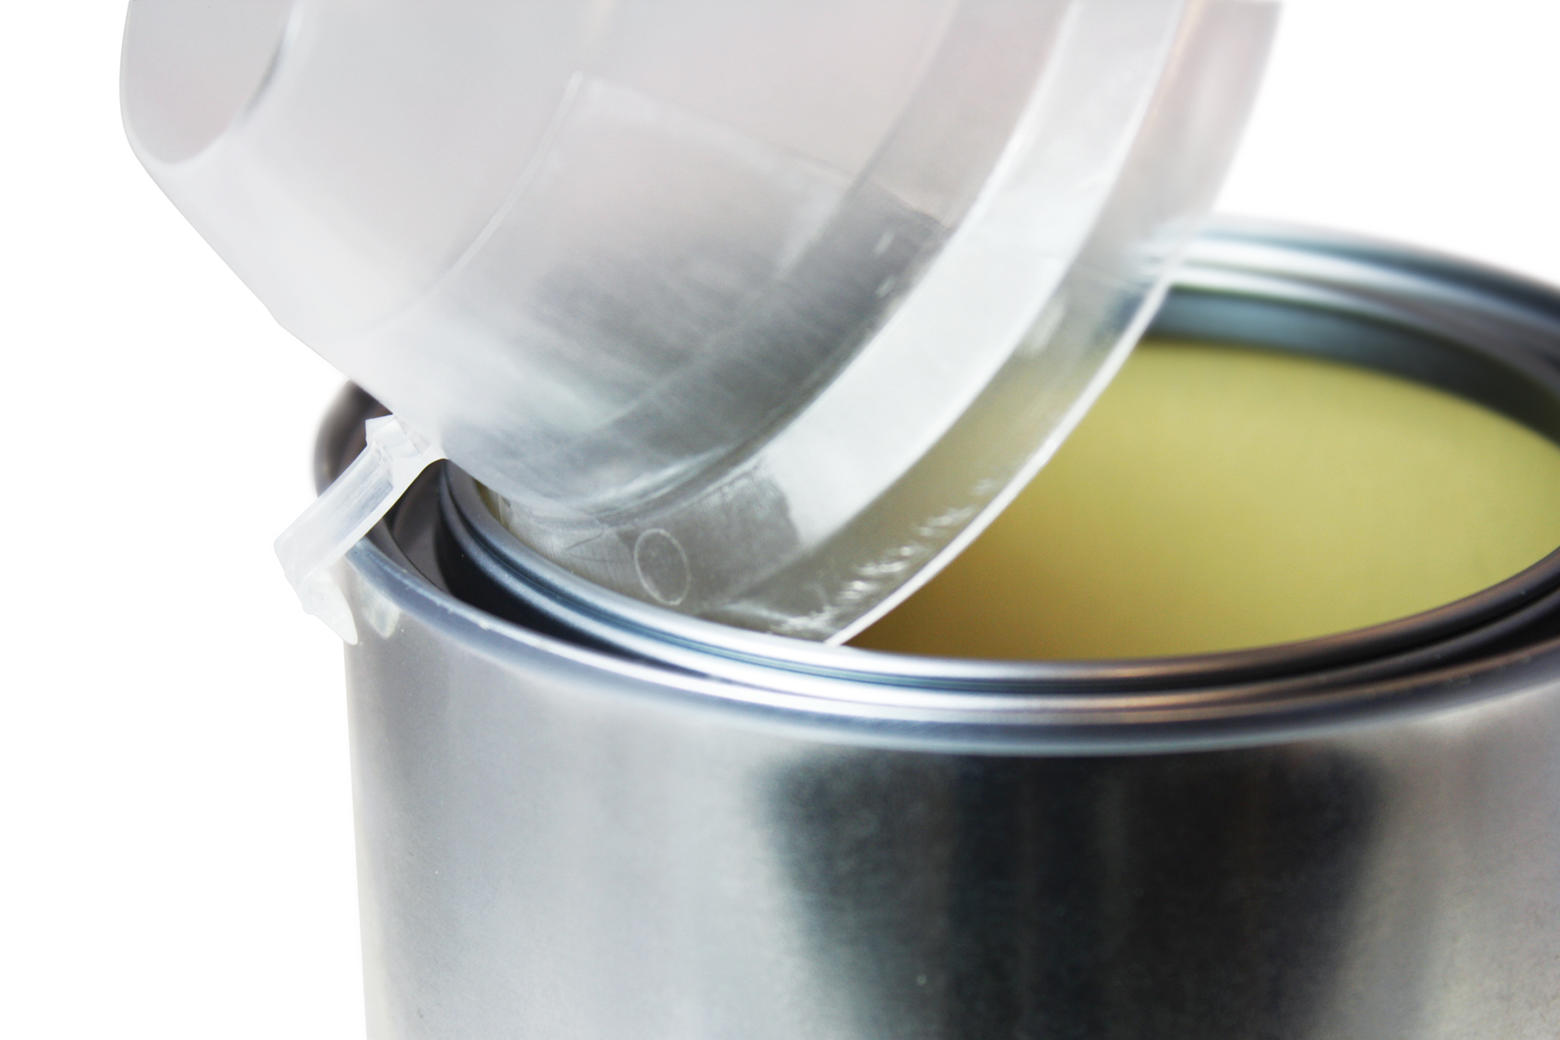 The hook of the Pour and Go snaps on the outside of the can, the lip goes inside and fills the rim for better emptying the paint can.